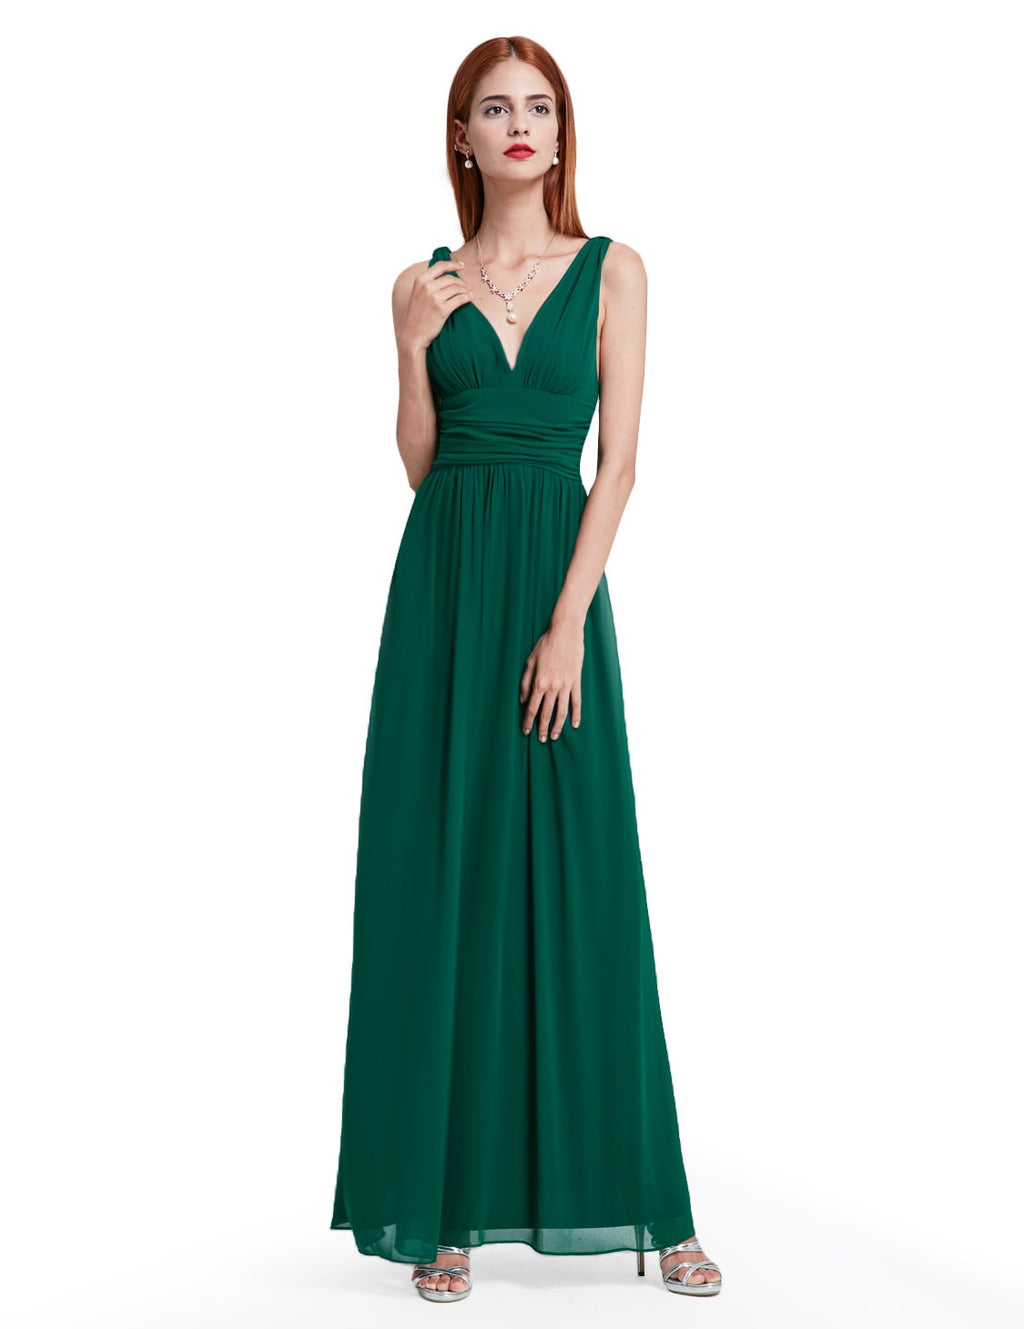 Chiffon Elegant Evening Gown Dark Green